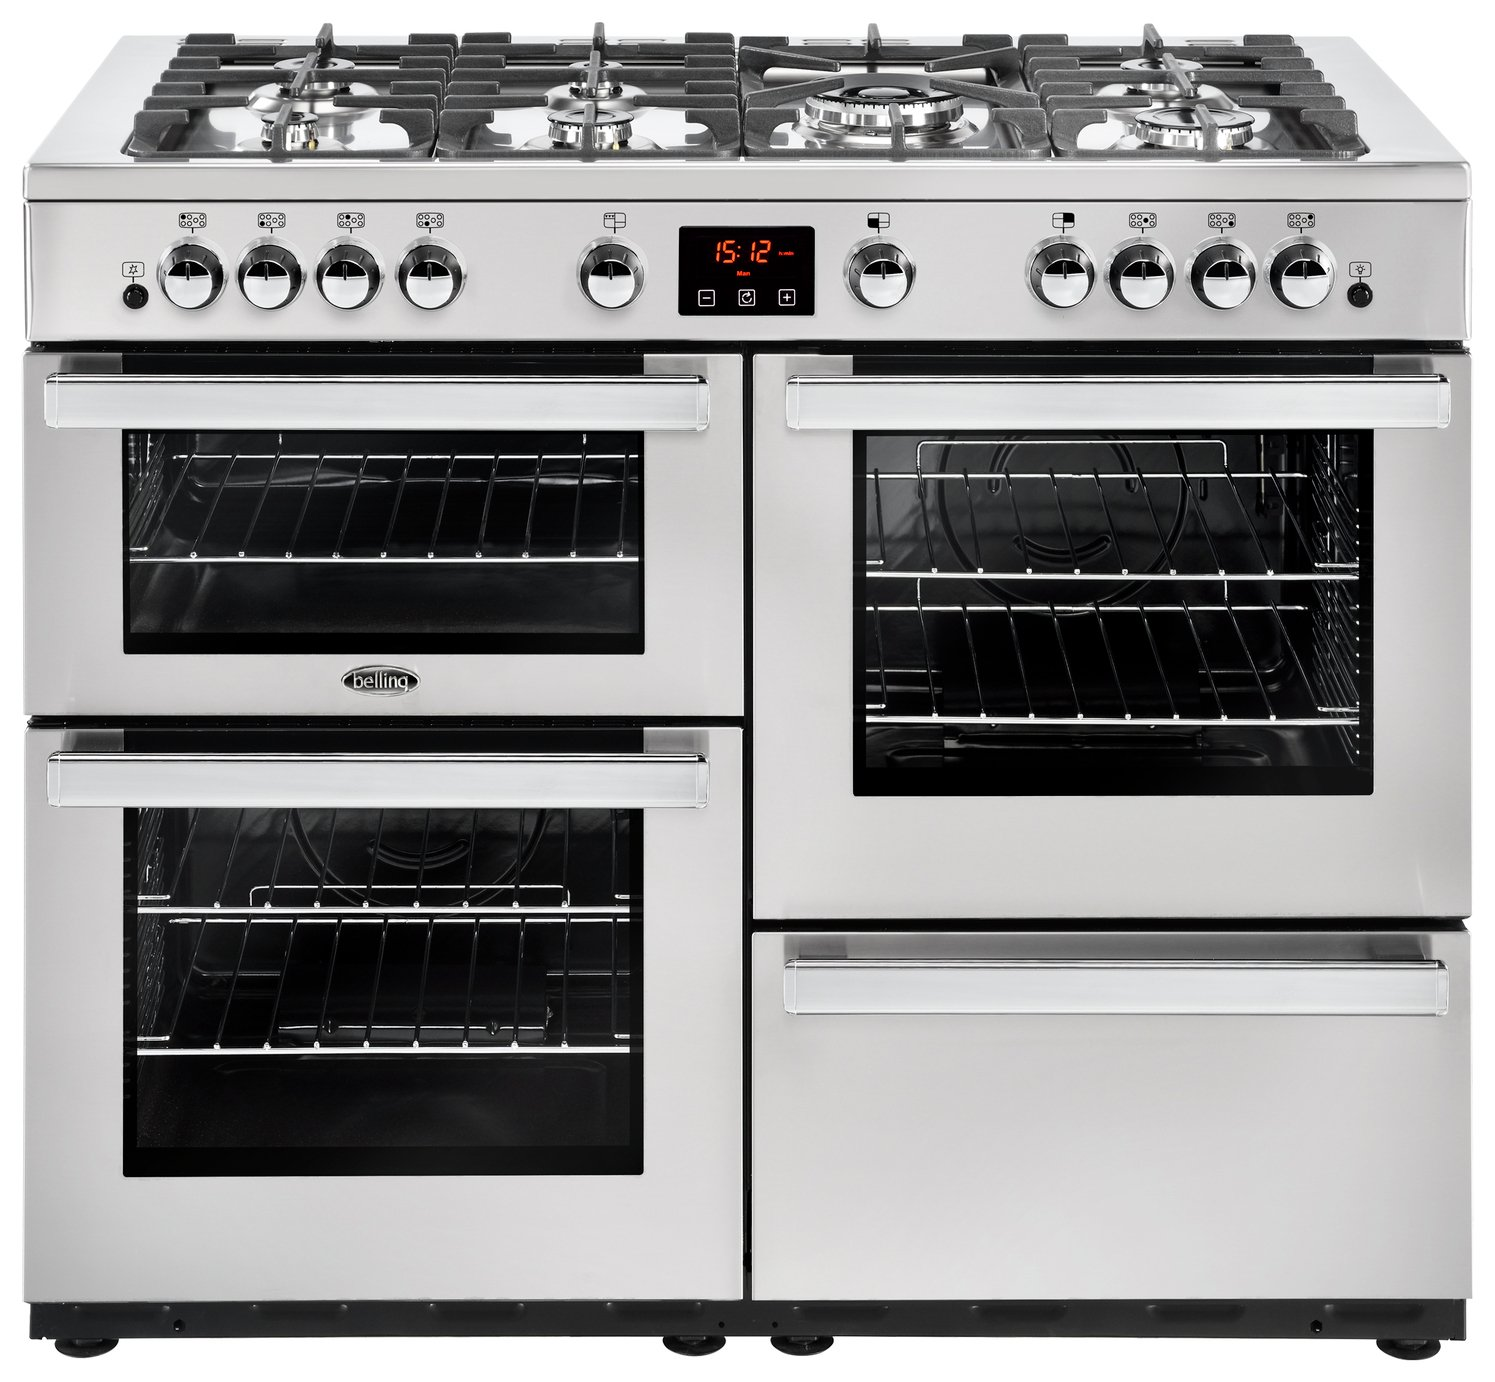 Belling Cookcentre 110G 110cm Gas Range Cooker - S/ Steel